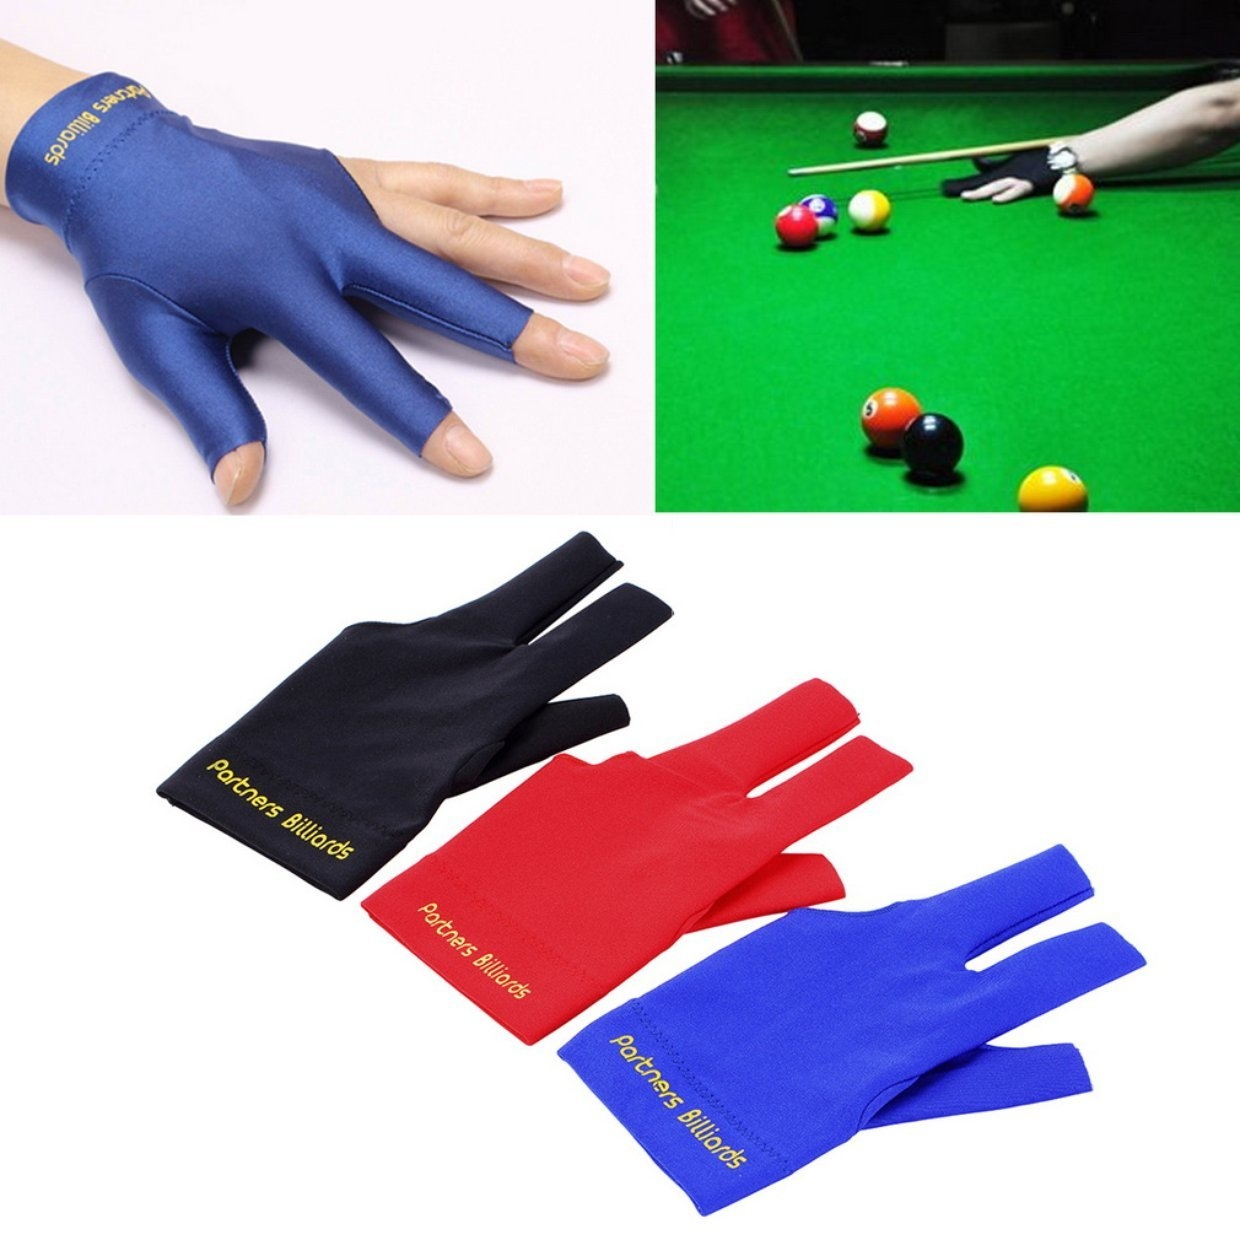 Billiards Other Billiards Accessories & Décor grey Spandex Snooker Billiard Glove Pool Left Hand Open Three Finger HP